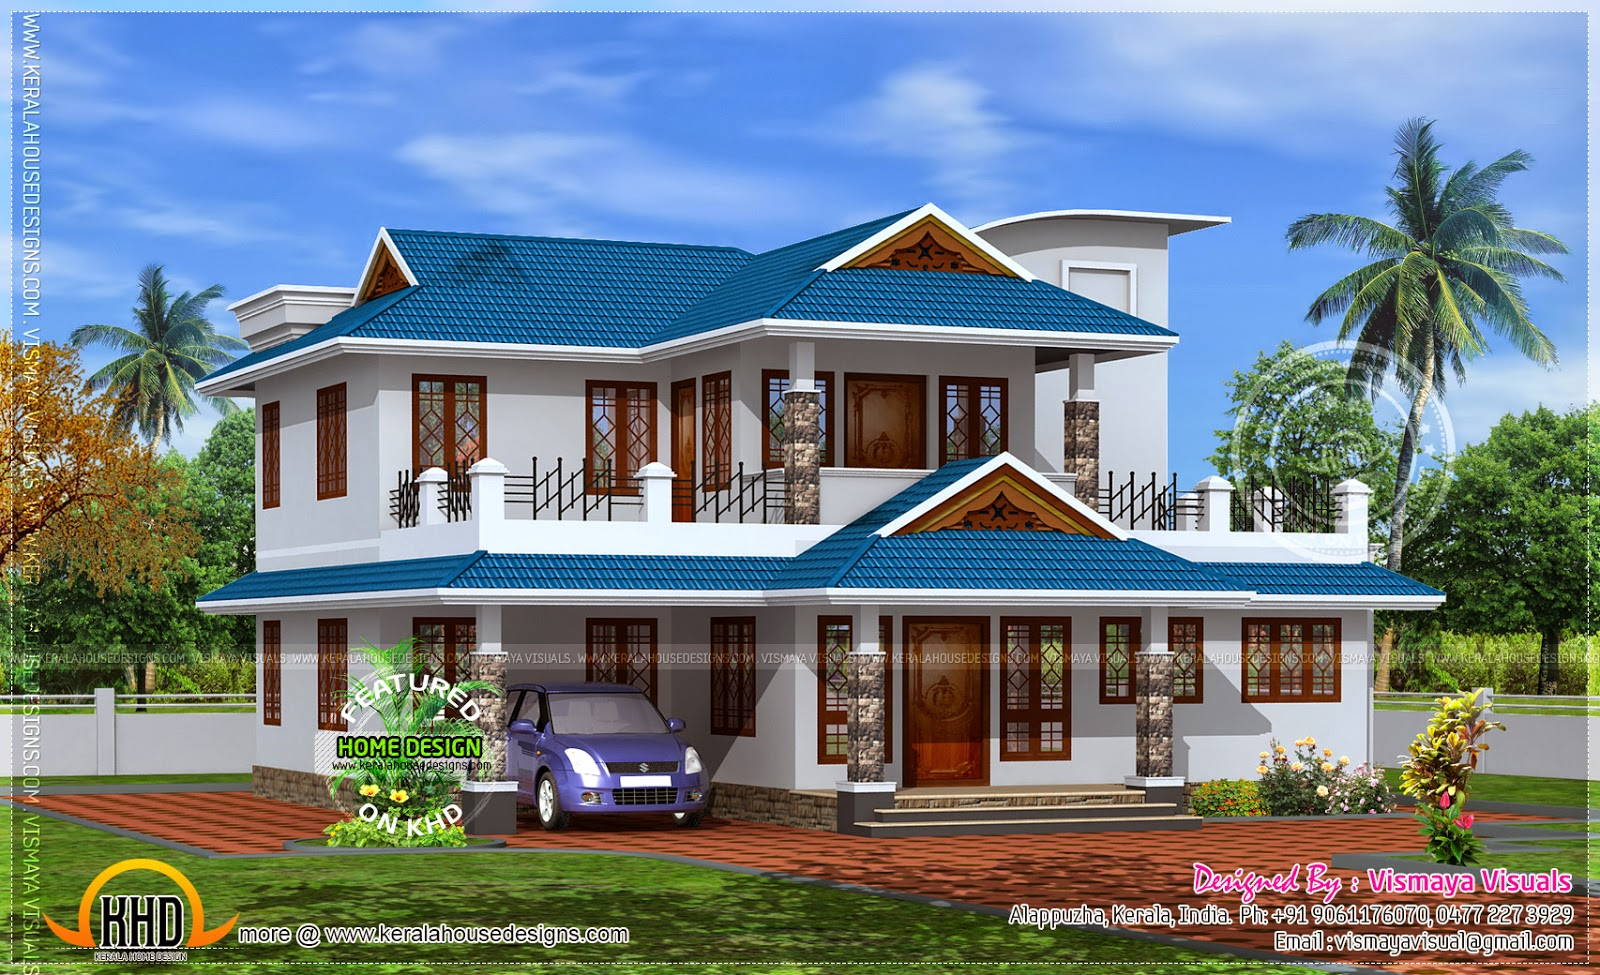 2350 sq feet home model in kerala kerala home design and floor plans rh keralahousedesigns com kerala home model images kerala house models plan